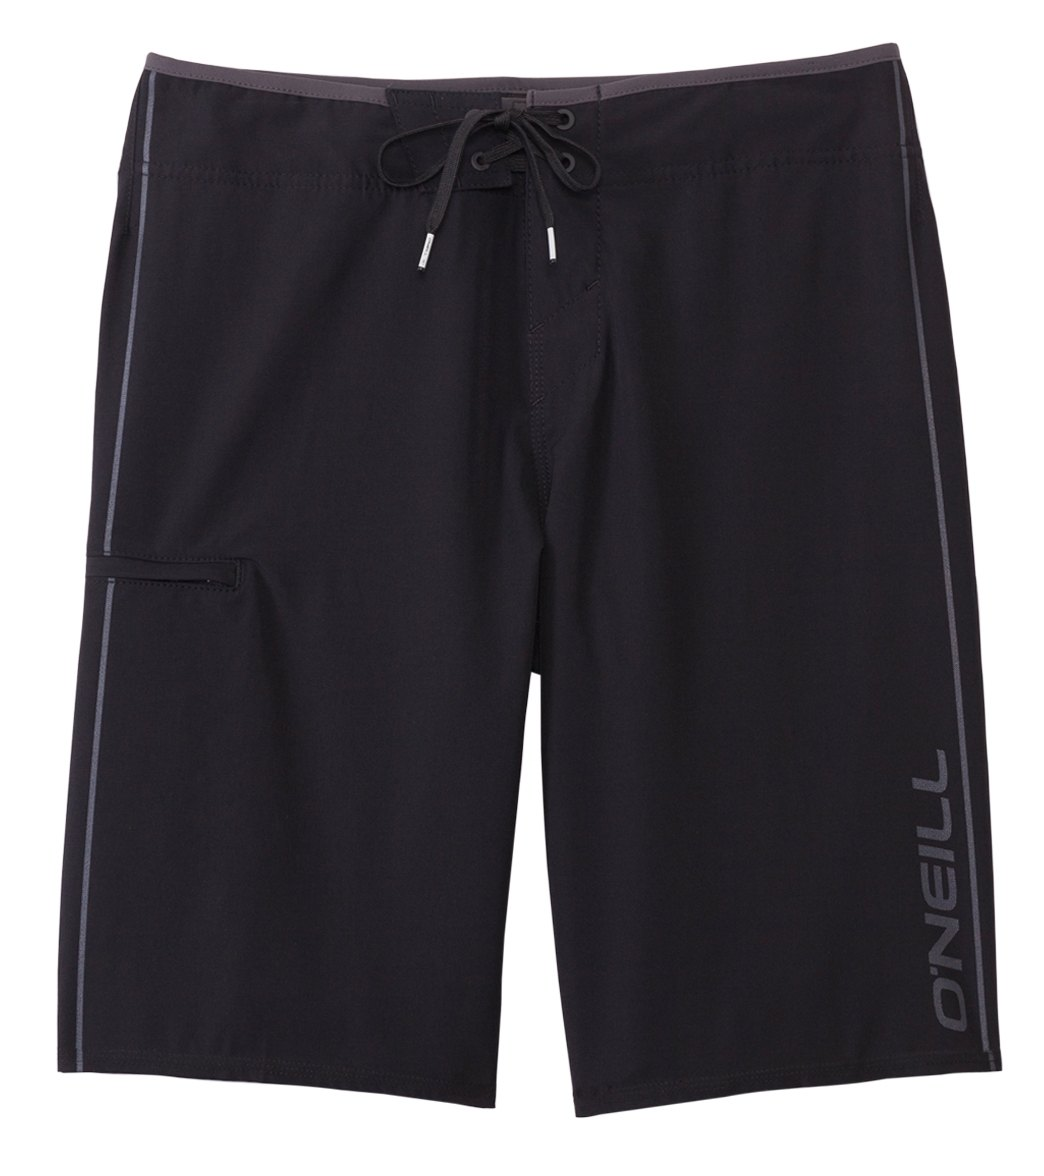 577e95893d O'Neill Men's Hyperfreak Solid Boardshort at SwimOutlet.com